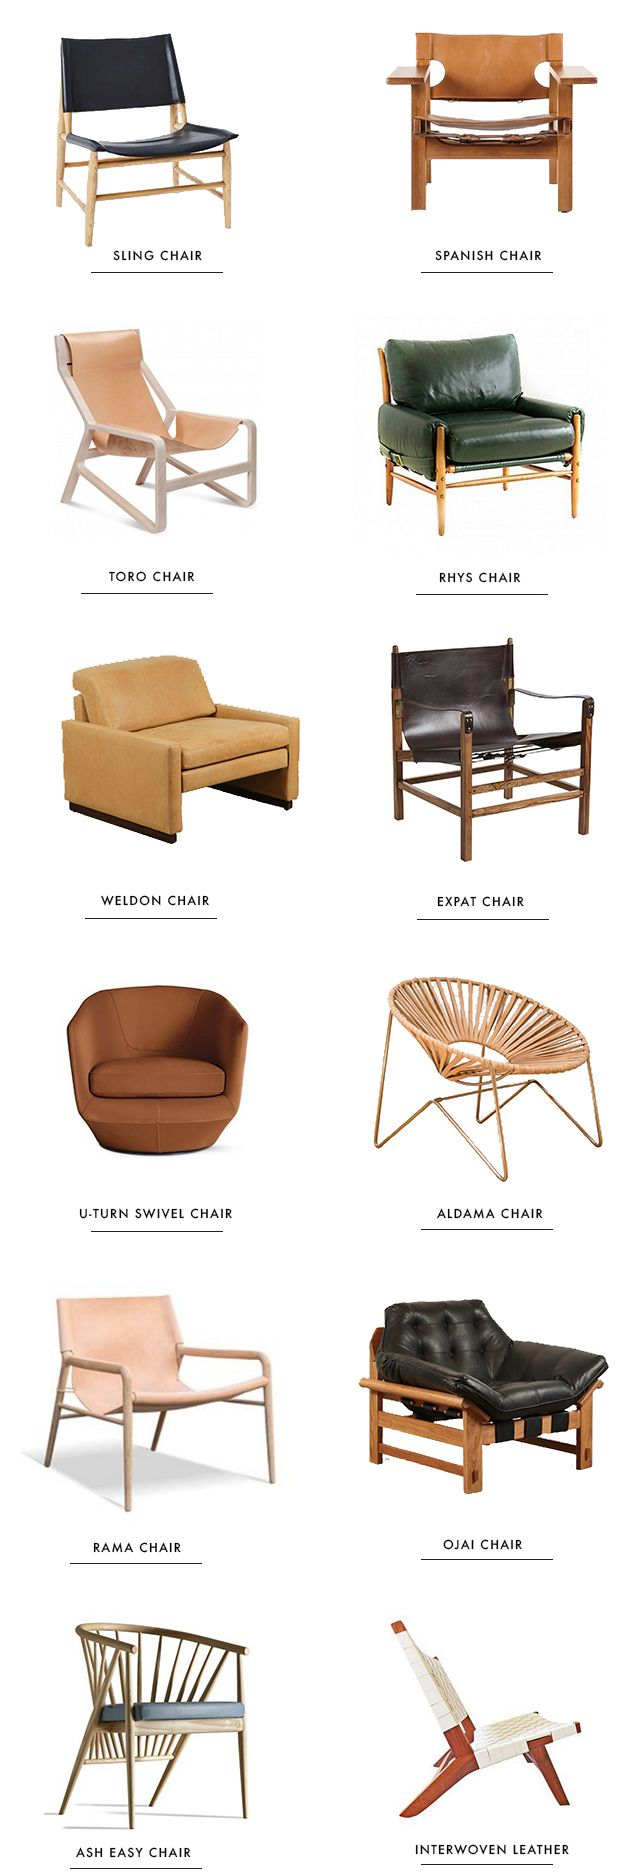 12 Leather Accent Chairs Leather Accent Chair Accent Chairs Furniture